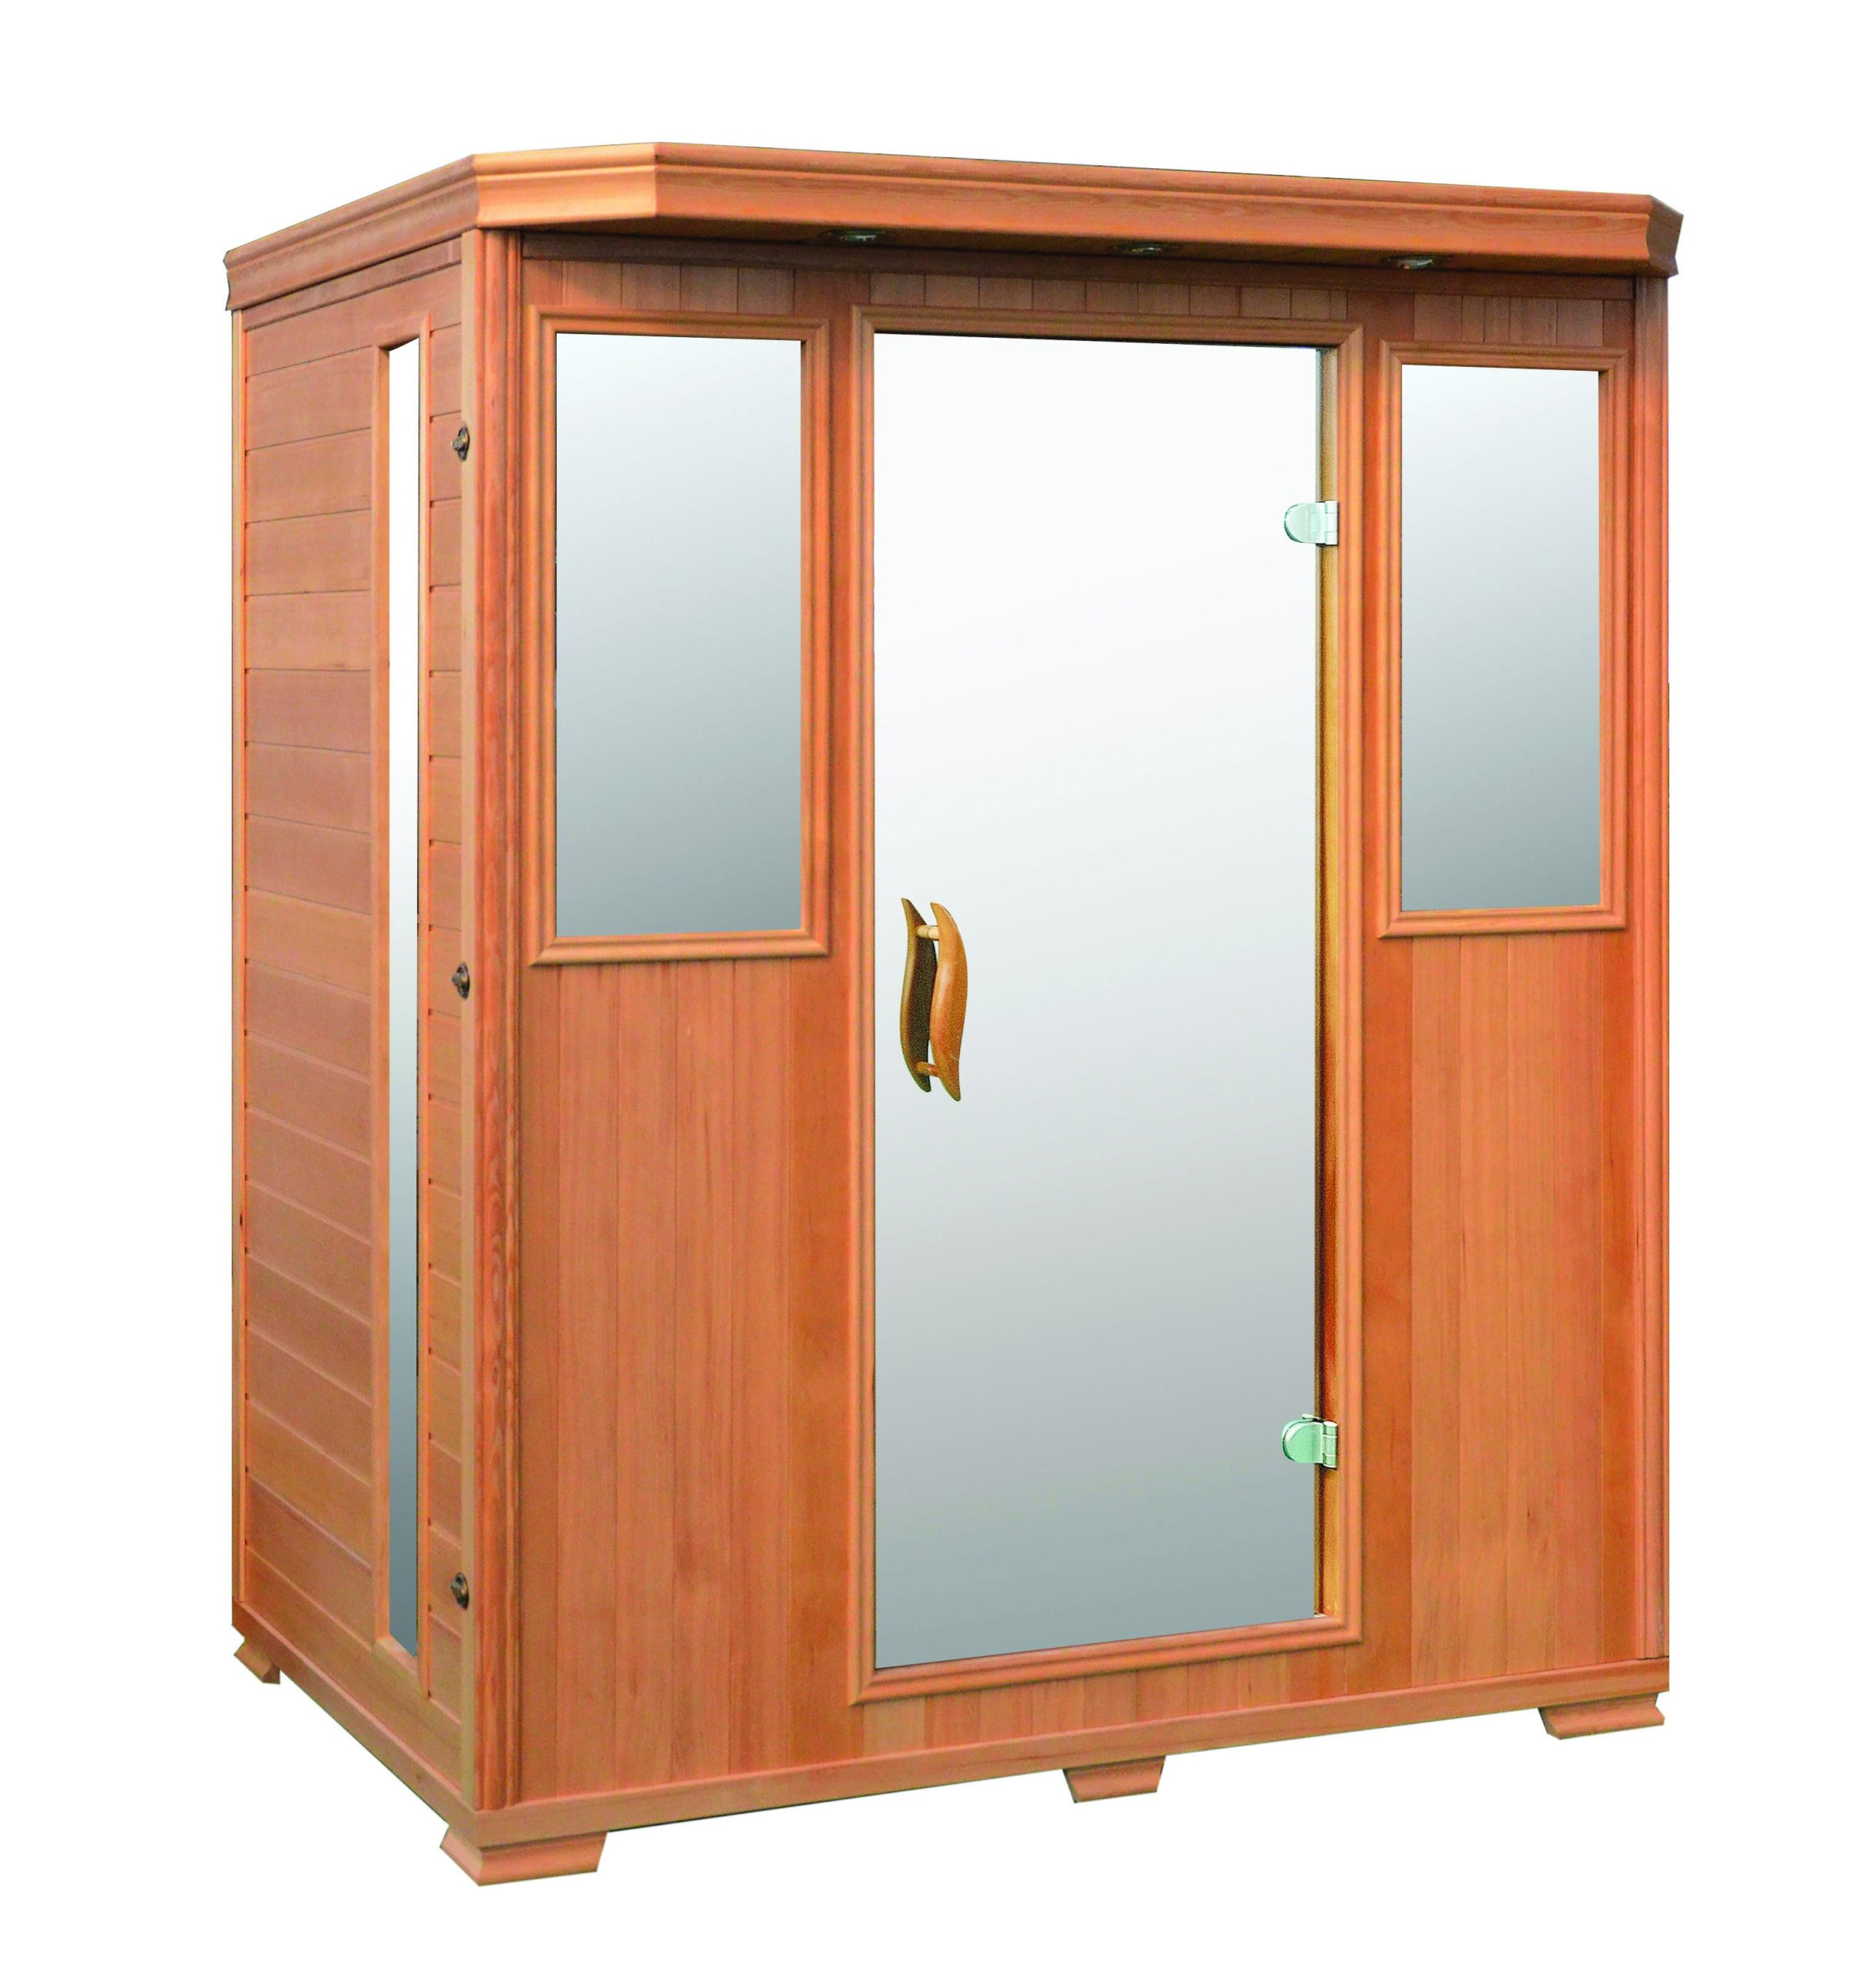 GHS Four Person Deluxe Saunas